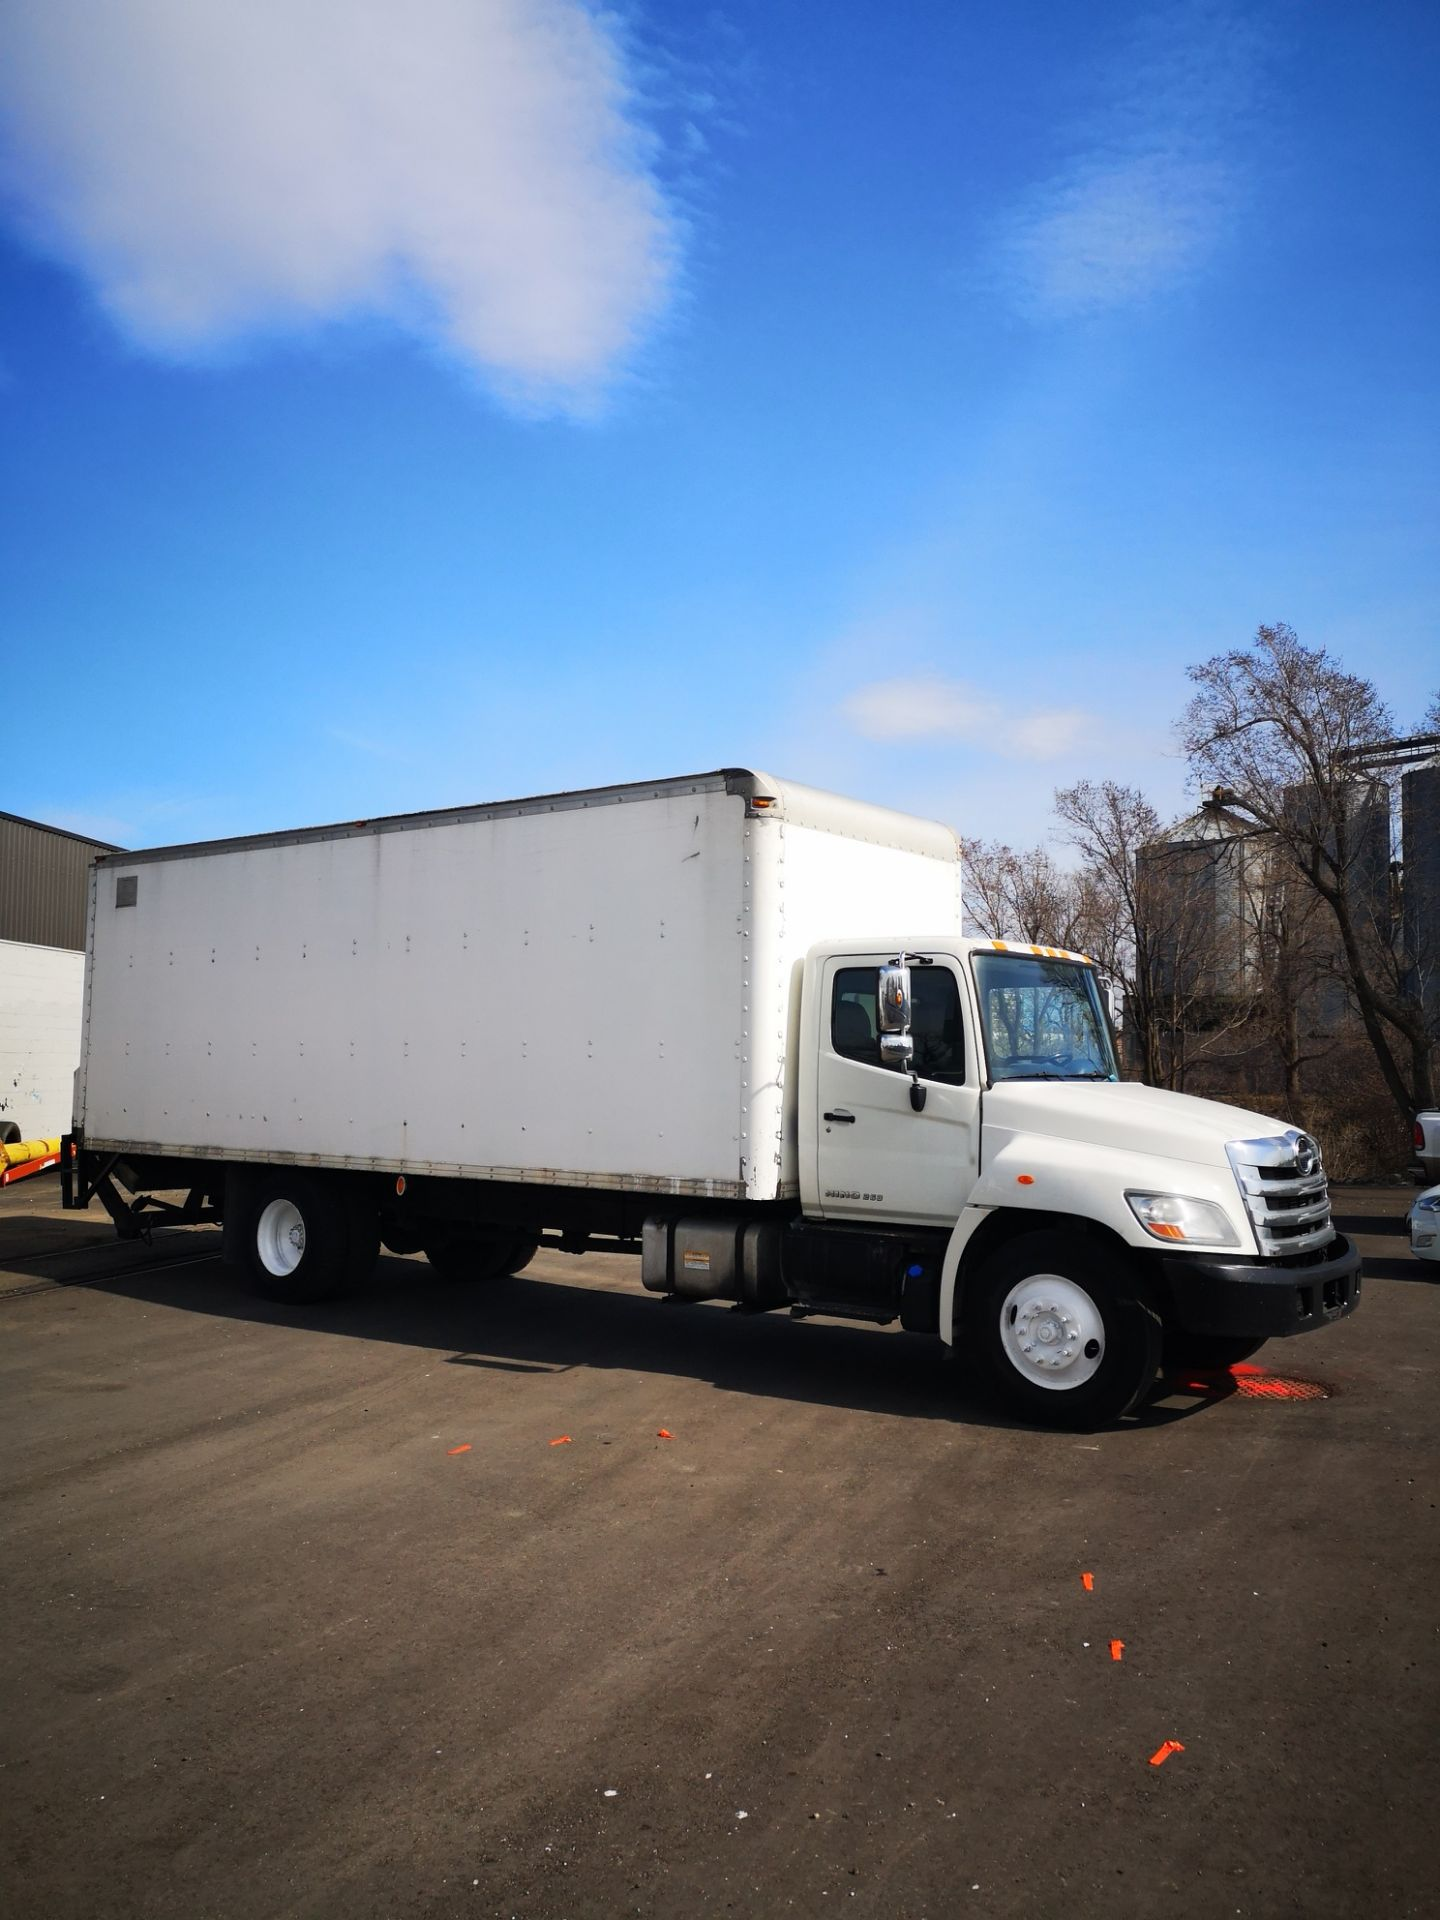 Lot 922 - HINO, 268, 24', BOX TRUCK WITH CENTRAL TRUCK BODY, ALLISON, 6-SPEED, AUTOMATIC TRANSMISSION